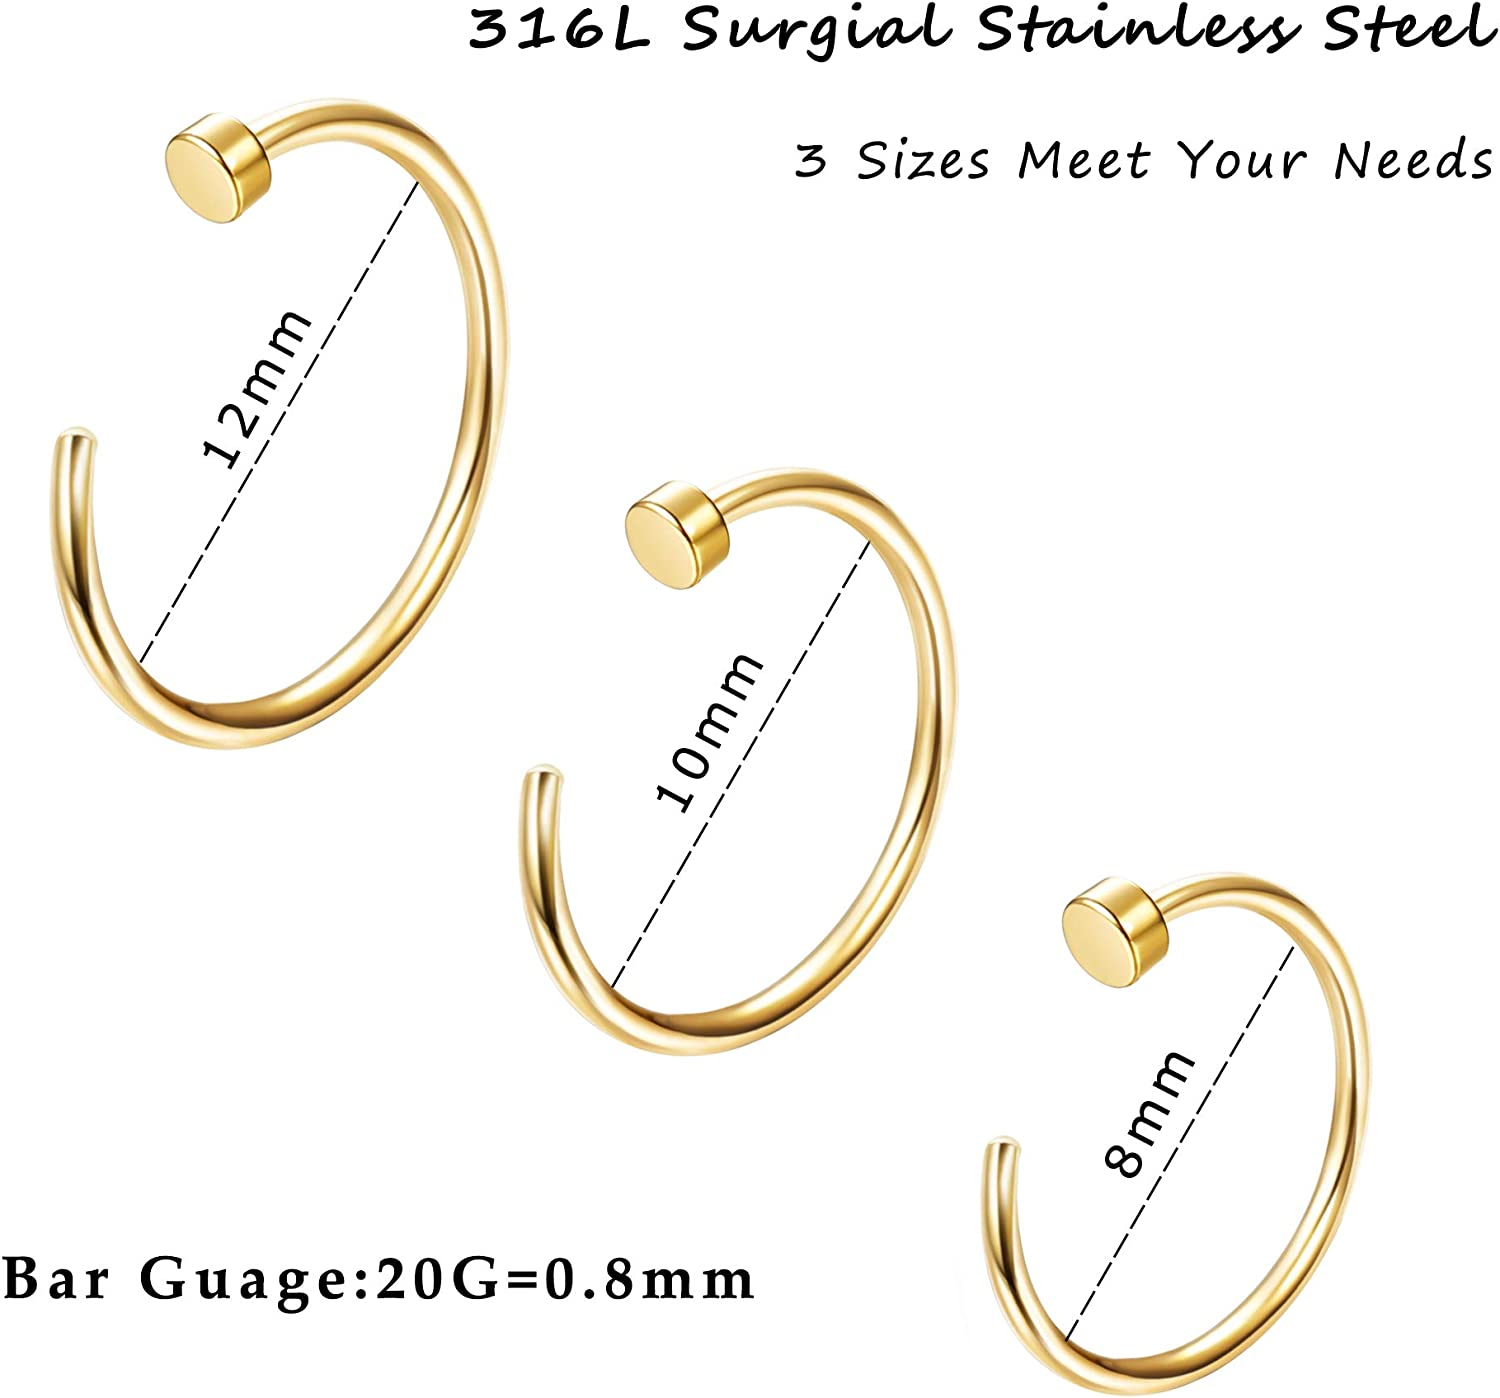 Drperfect 20G 36PCS 316L Stainless Steel Nose Ring Hoop Nose Piercing Jewelry for Women and Men